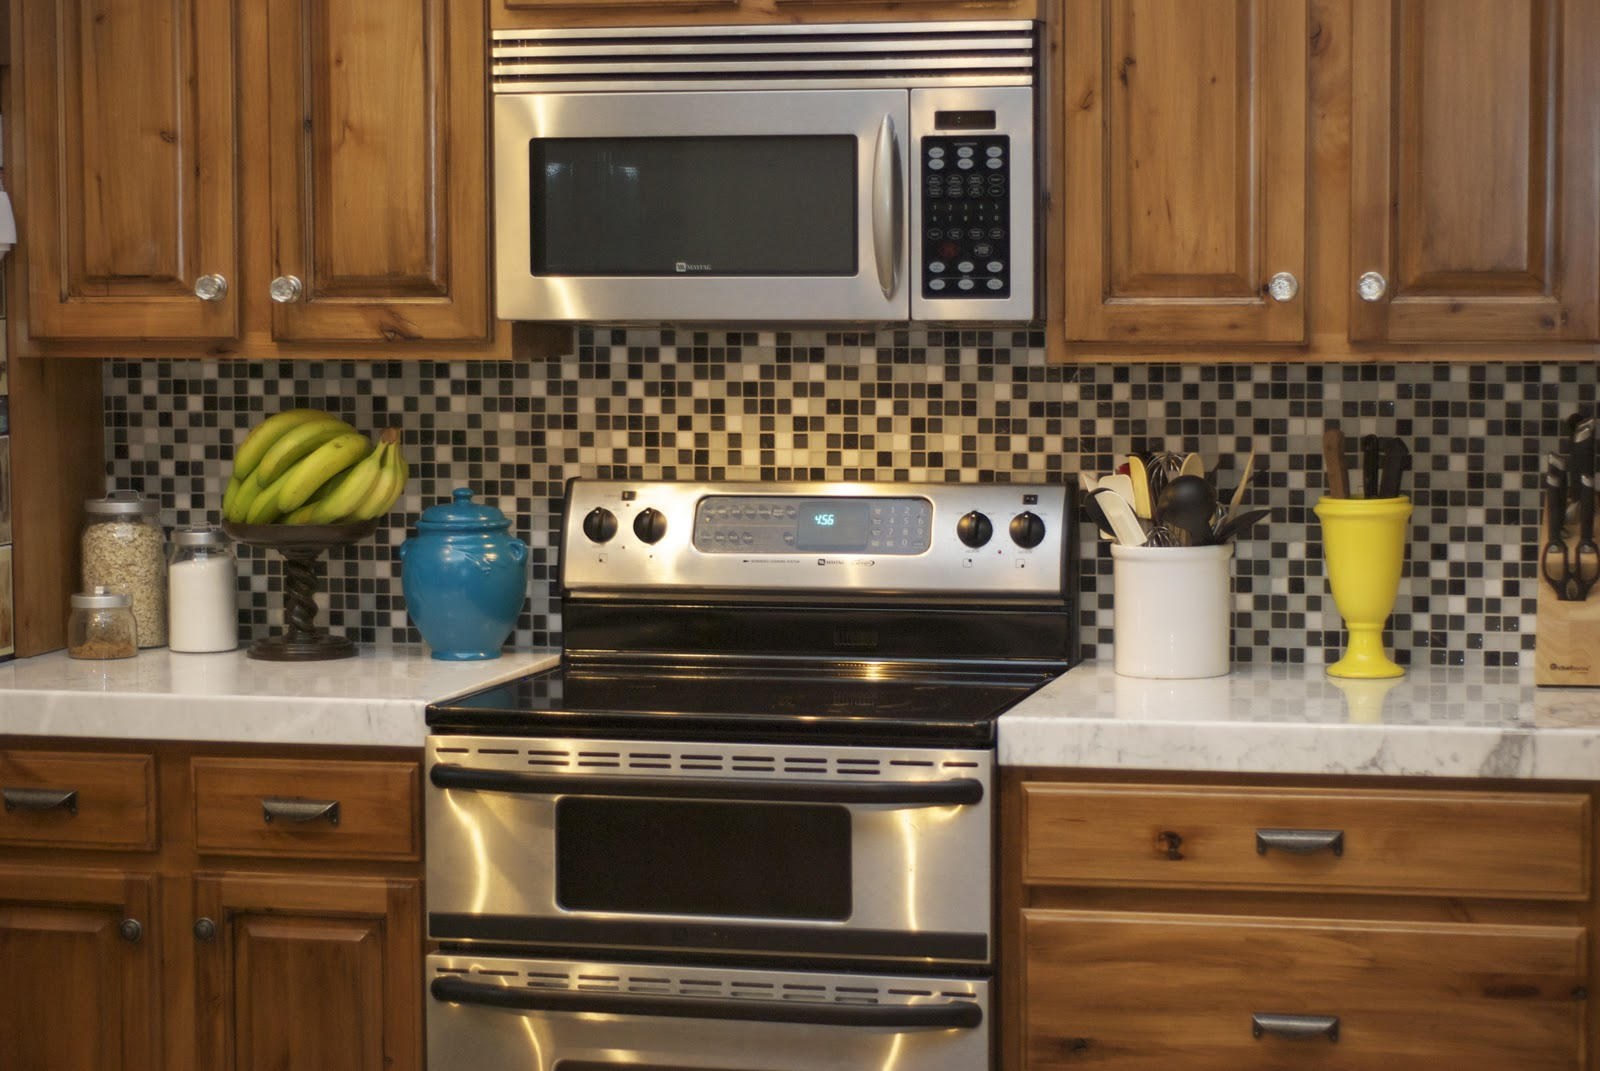 A pina colada backsplash ideas - Kitchen backsplash ideas pictures ...